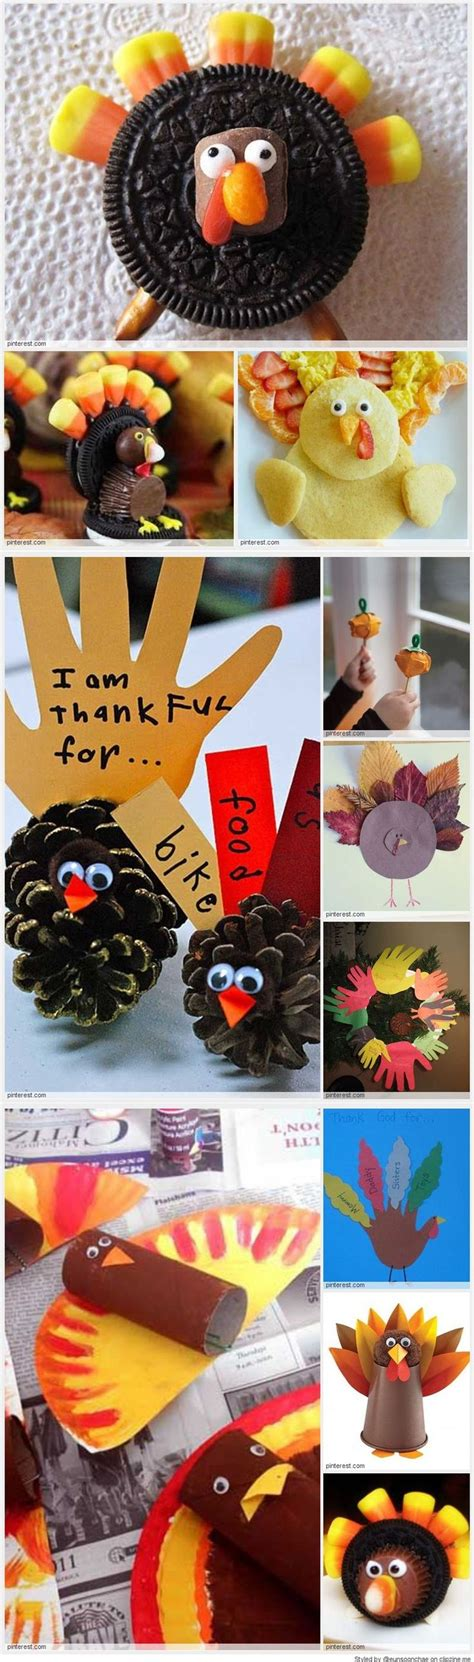 thanksgiving crafts for church 24 best images about church fall craft ideas etc on